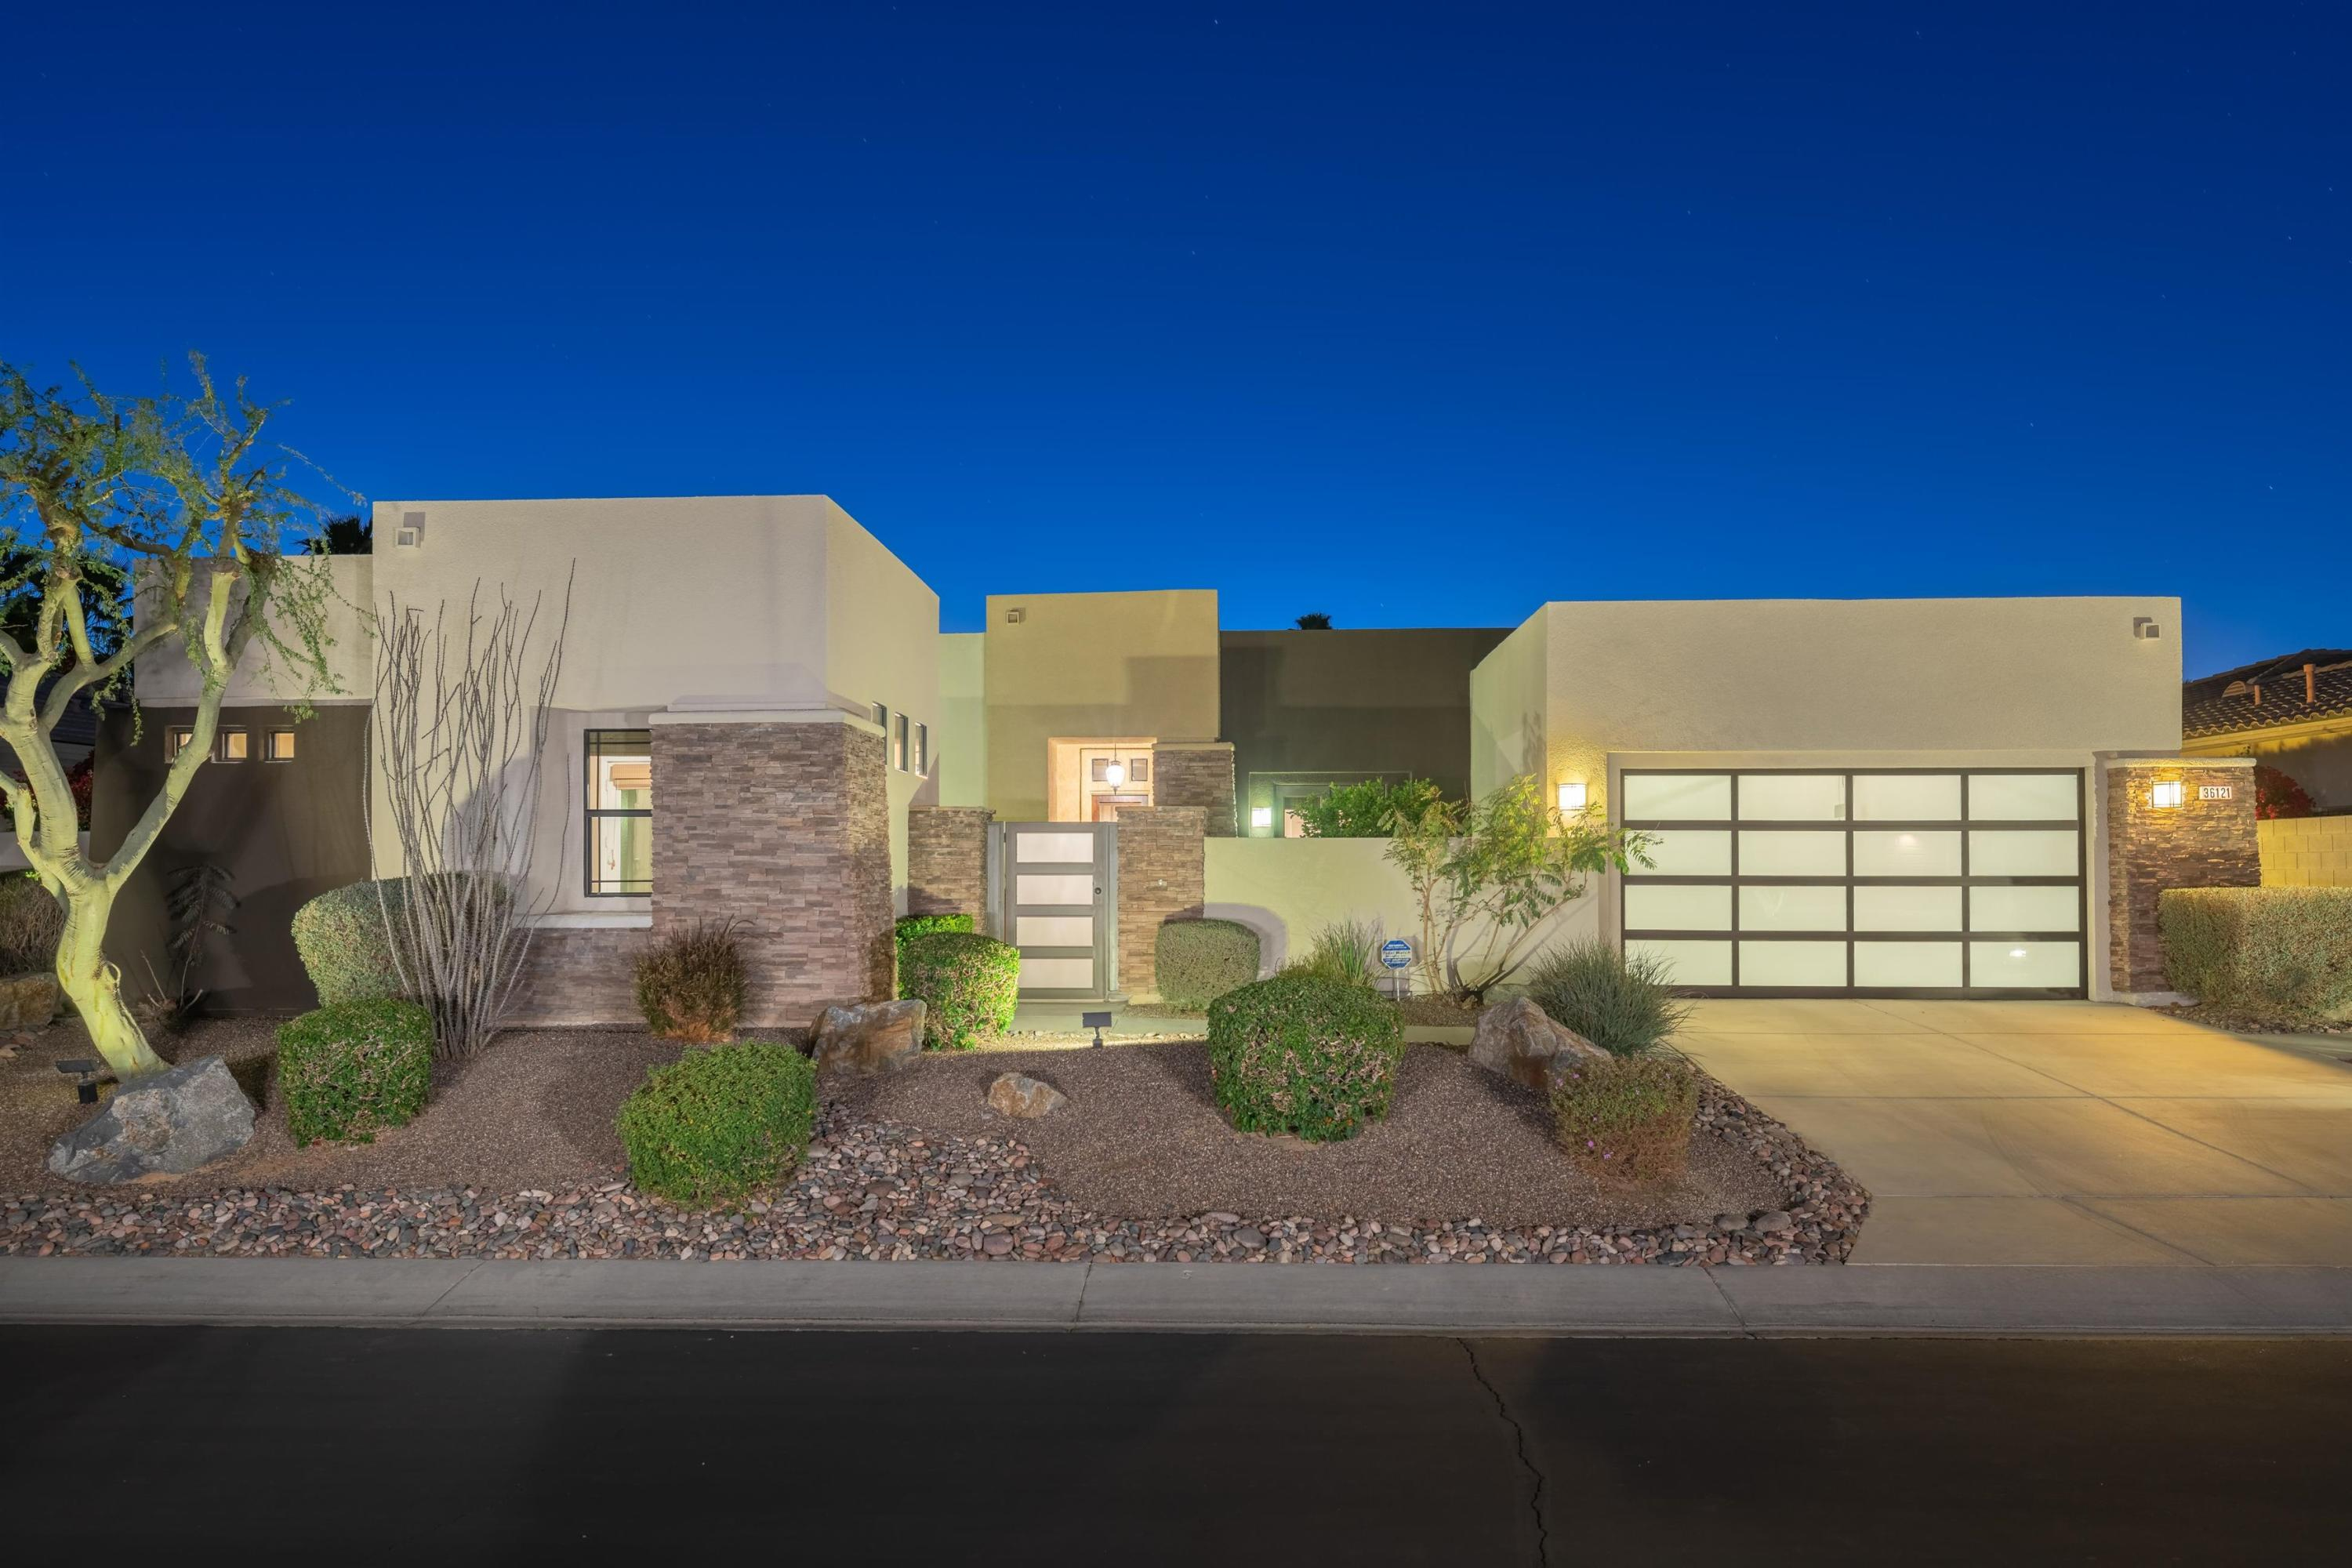 Exceptional design, comfort, and location makes this the perfect dream home.  This home has everything you could want and more.  A rare contemporary Plan 2 (Chagall model) offering 2,389 sq ft is now on the market in Montage at Mission Hills.  The home has custom interior design by Jerry Delmonico.  The exterior of the home was recently repainted.  There is a new sleek glass panel garage door, a new glass panel/metal front gate, and a new front entry glass door.  This home is perfect for entertaining, offering a great room with surround sound, gas fireplace, wet bar with wine refrigerator, a designated dining area and a large kitchen featuring a stainless steel 5 burner gas cooktop, double electric ovens, microwave, dishwasher and a 36 inch French door refrigerator/freezer.  There are 3 bedrooms (including a detached casita), plus a den/office with French doors opening onto an enclosed, front courtyard with outdoor fireplace.  The master bedroom with a spacious walk-in closet has amazing mountain views.  From the master bedroom French doors open onto a covered loggia with more western mountain views from the back yard.  There are 3 additional bathrooms (including a powder room).  Outdoors you will find a gilling island with gas BBQ, a mini bar refrigerator, fire pit, 40 foot salt water swimming pool with water features and a raised 10 person spa with a waterfall.  This home has been impeccably maintained and it shows.  HOA dues only $260/mo and includes MHCC membership.